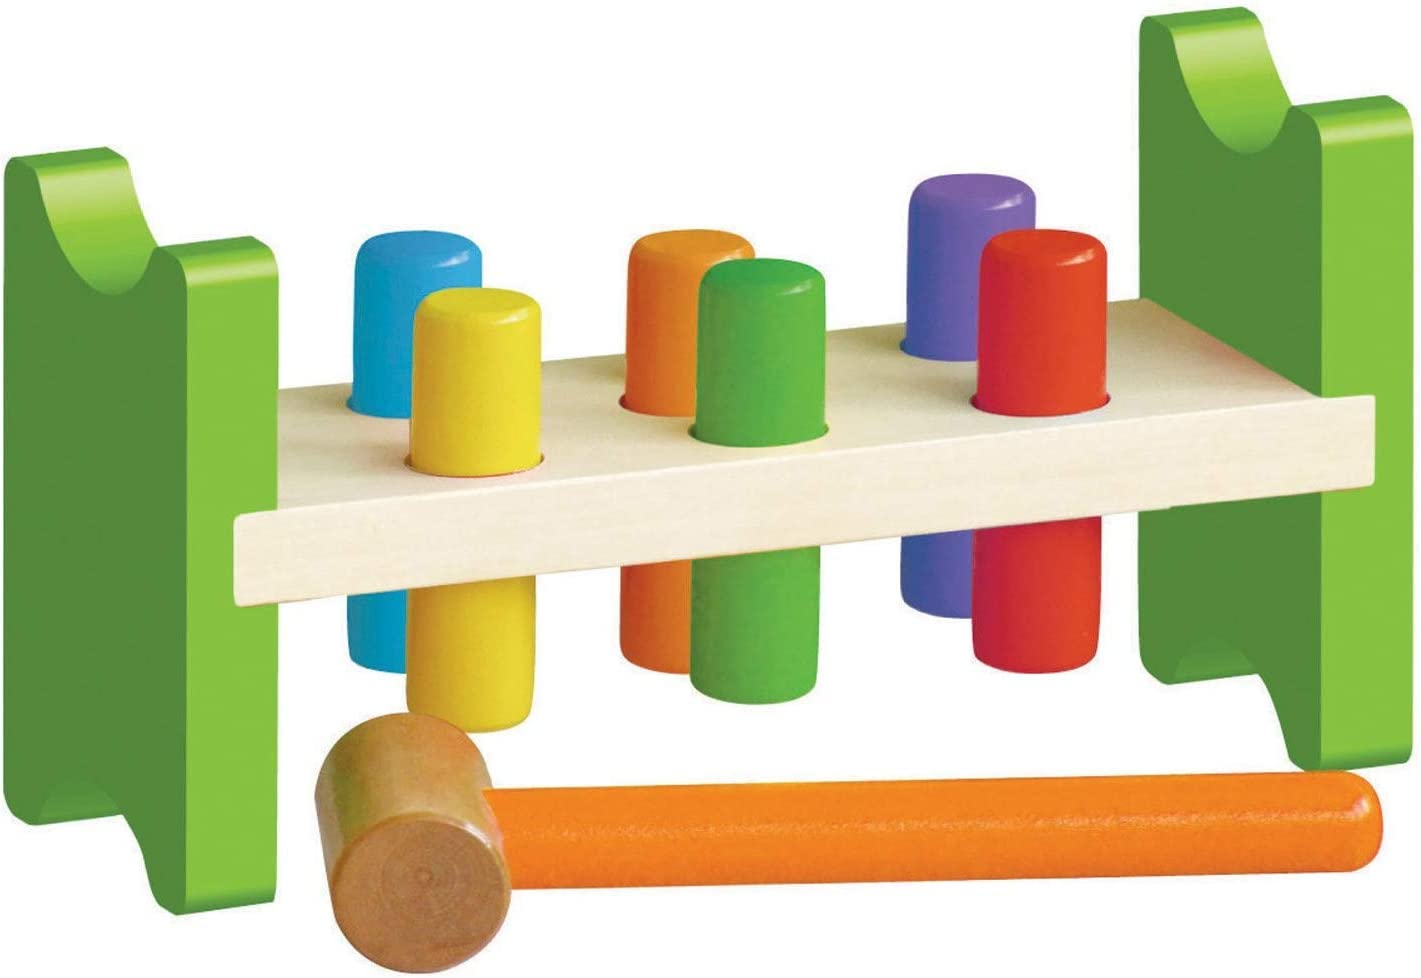 natural toys wooden peg animals toddler toys emergent toy Pond Adventures wooden peg people preschool toys